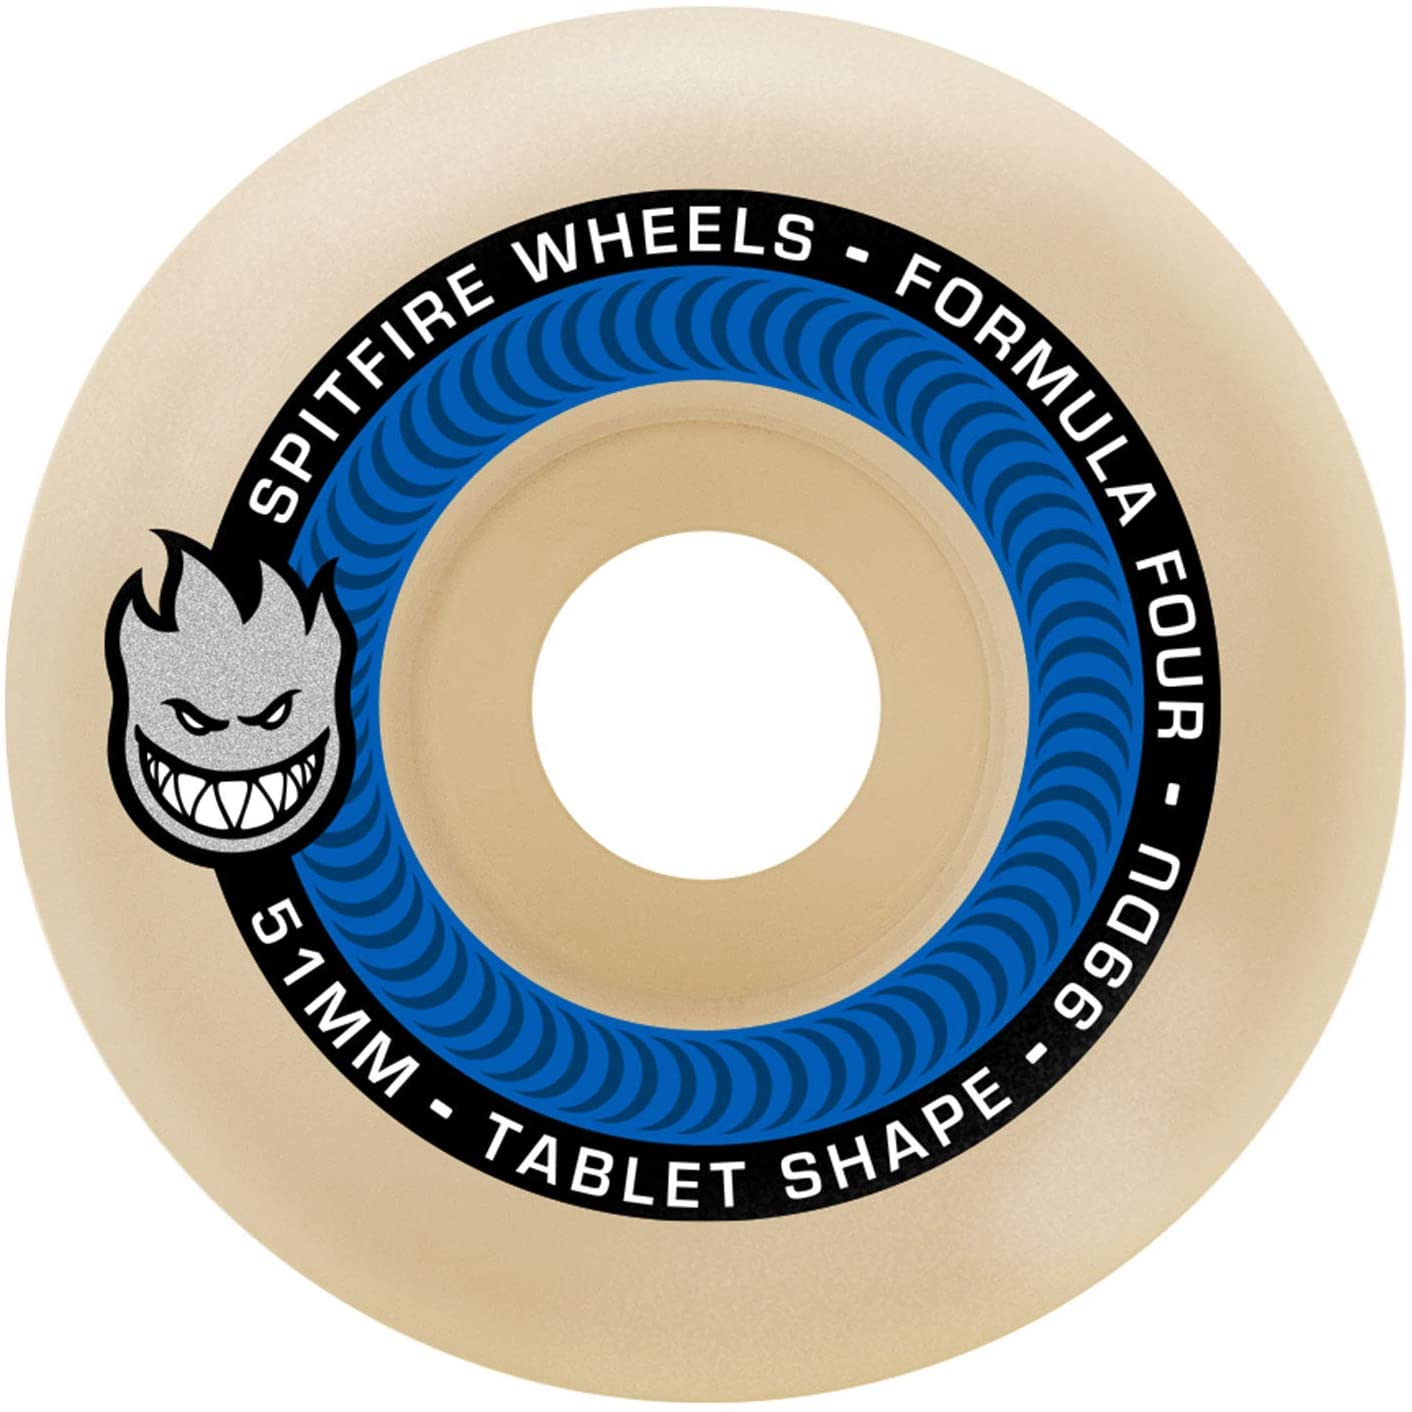 Spitfire Formula Four Tablets Skateboard Wheels Natural/Blue 52mm 99DU (4 Pack)